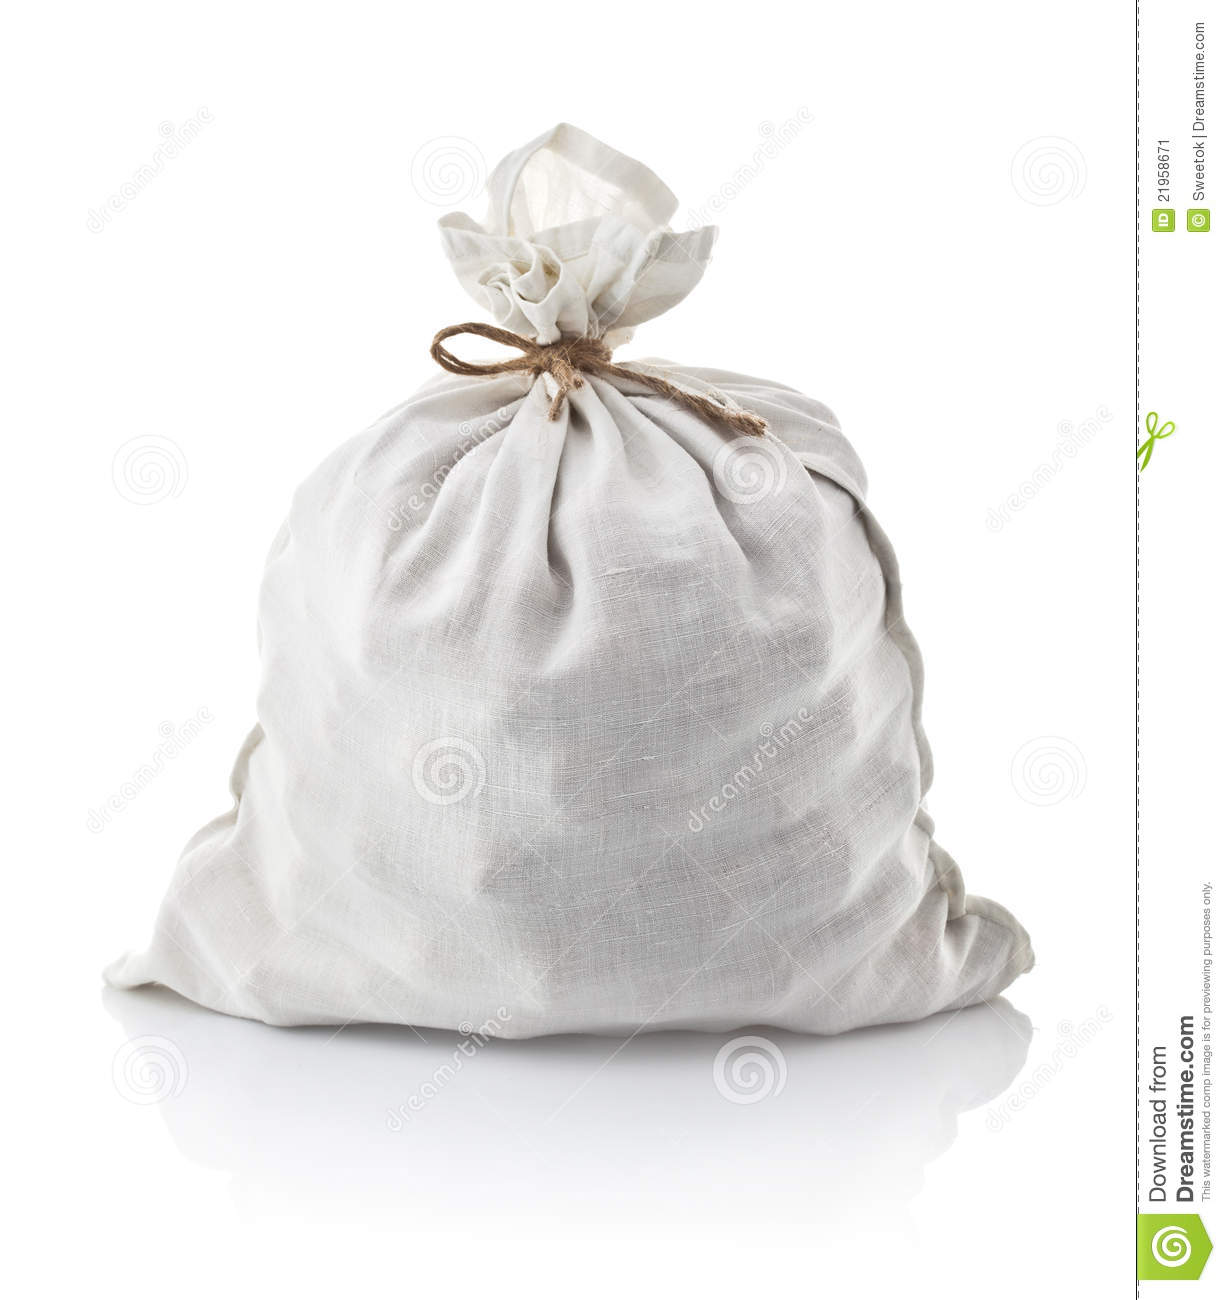 Full White Sack Tied By Rope Stock Image - Image of nobody